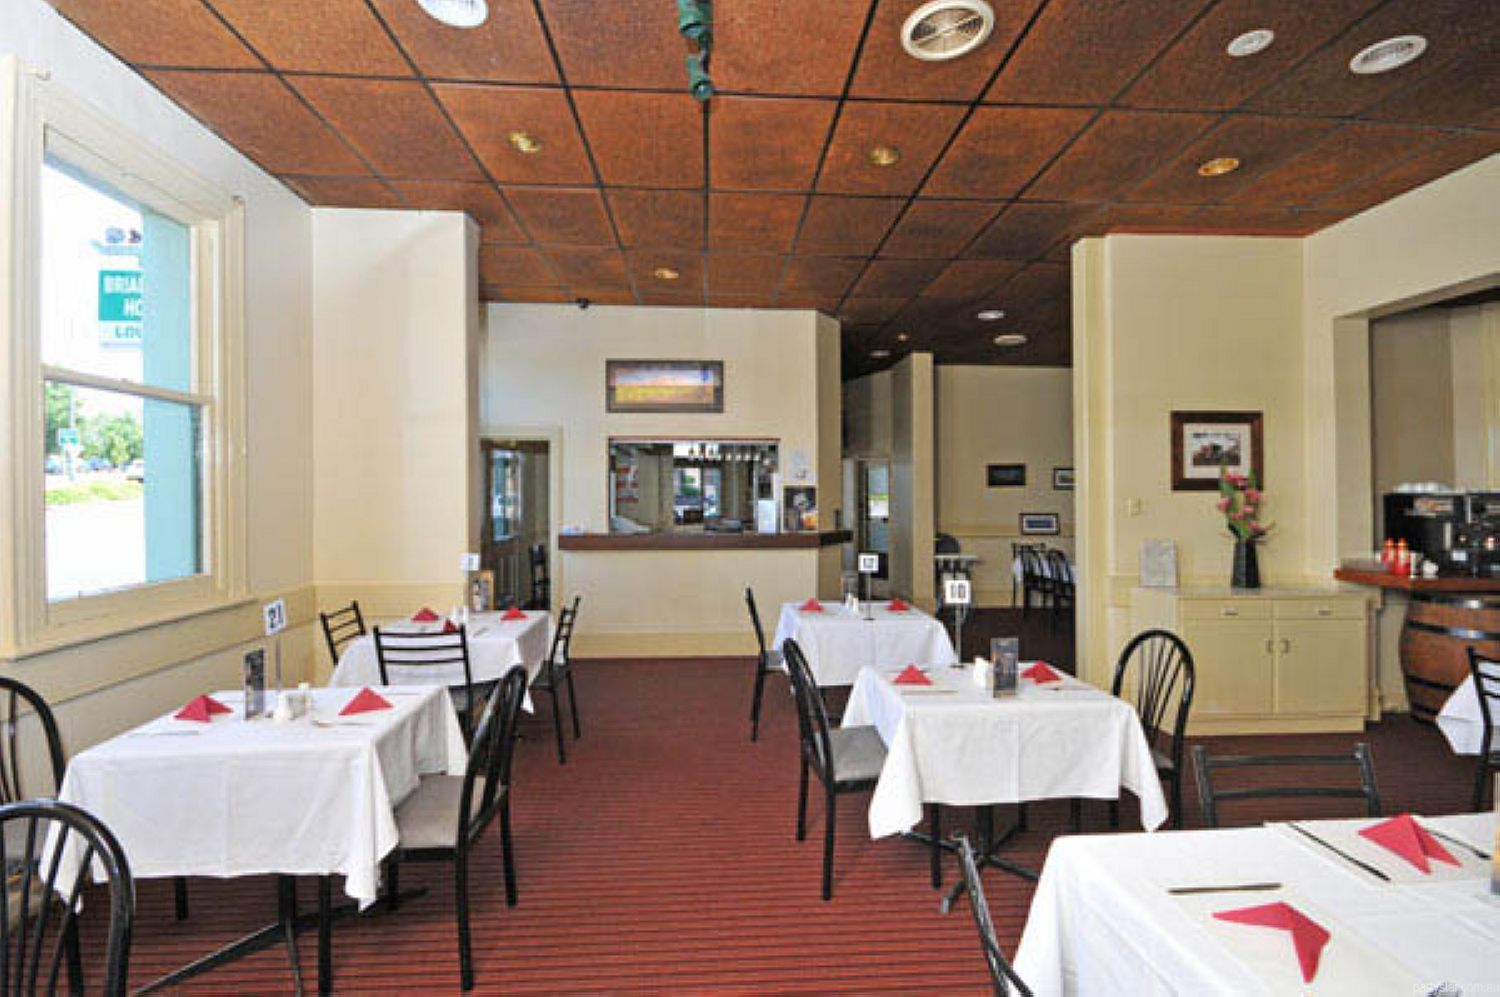 Brian Boru Hotel, Bendigo, VIC. Function Room hire photo #3